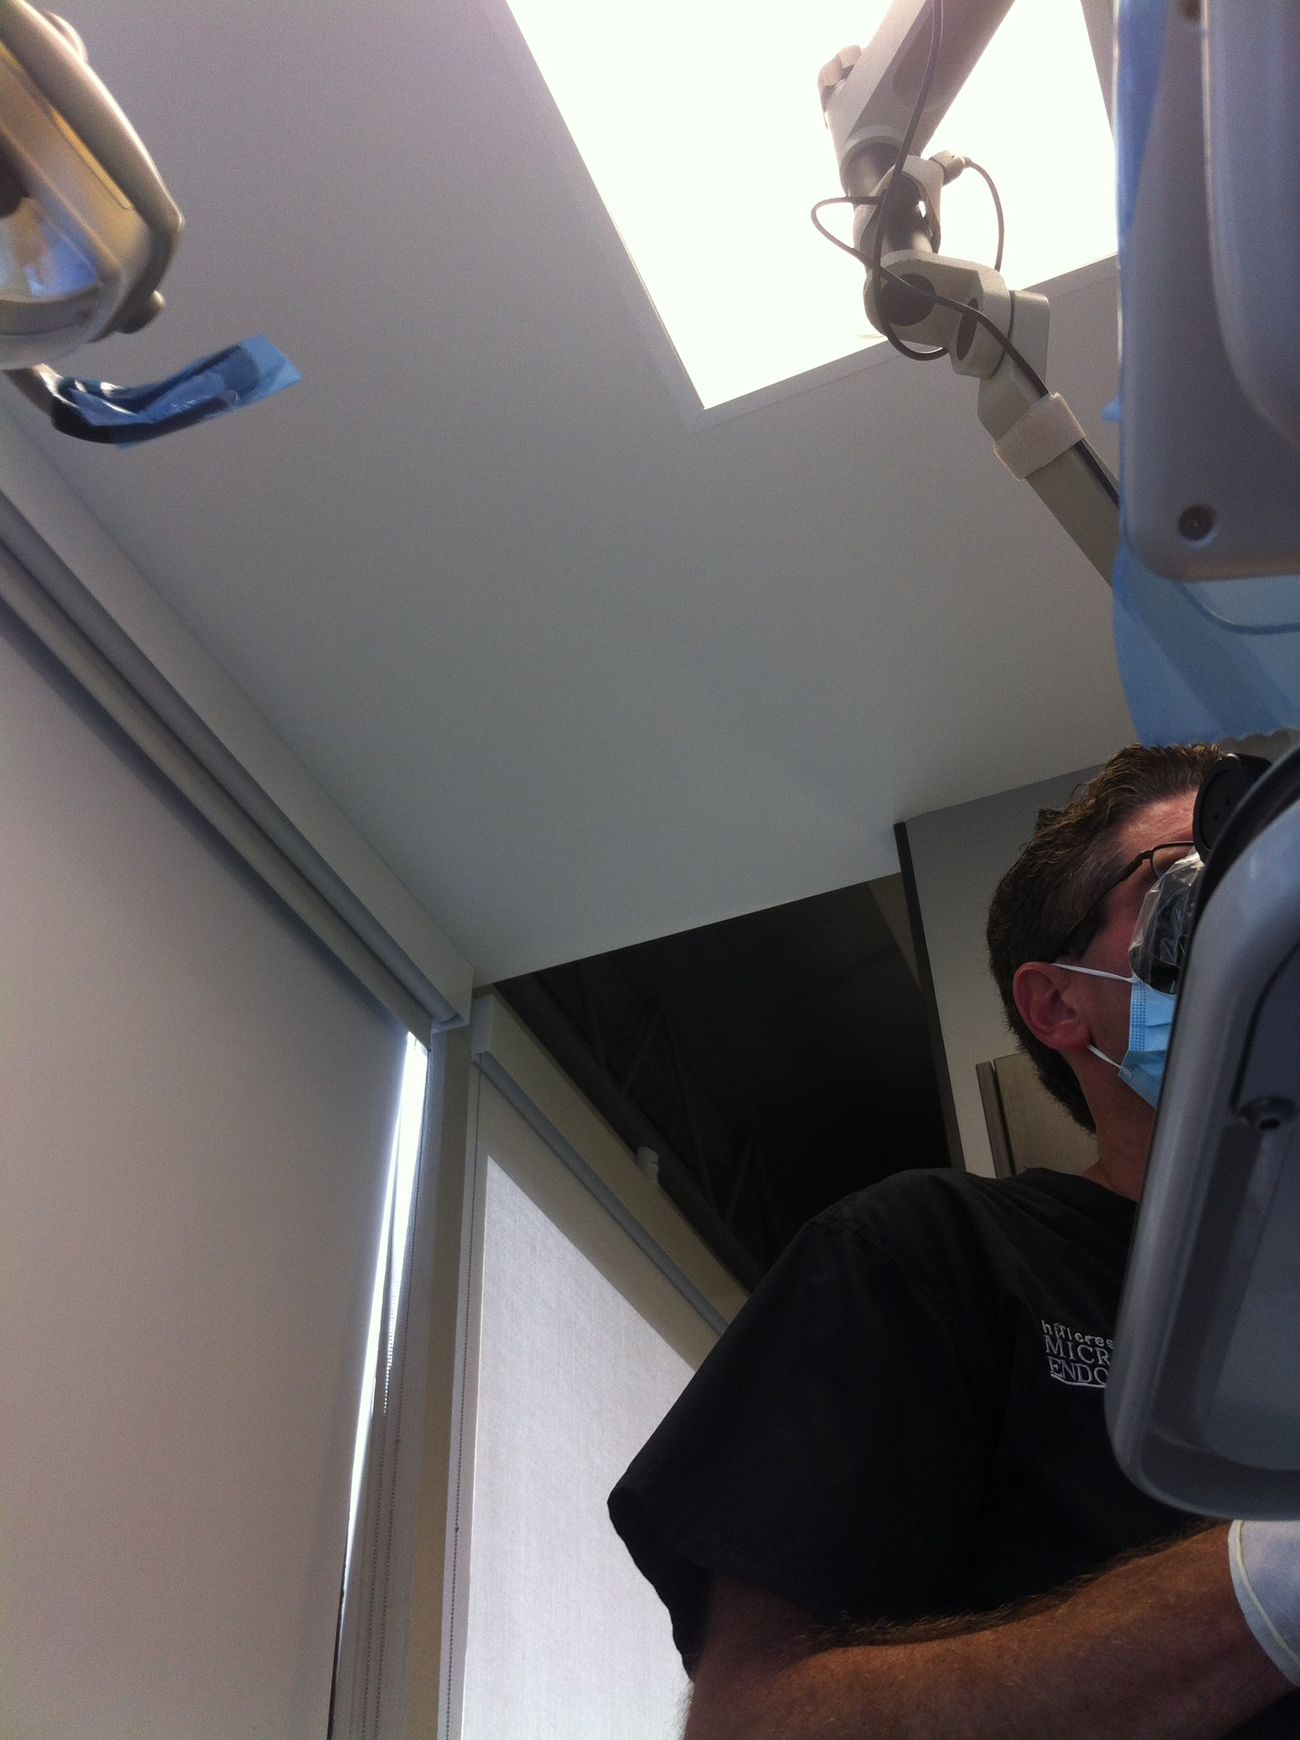 Spying Spy Perfect Dentist Root Canal ... Masked Up People Watching First Eyeem Photo Hello World Lookingup Voyerism